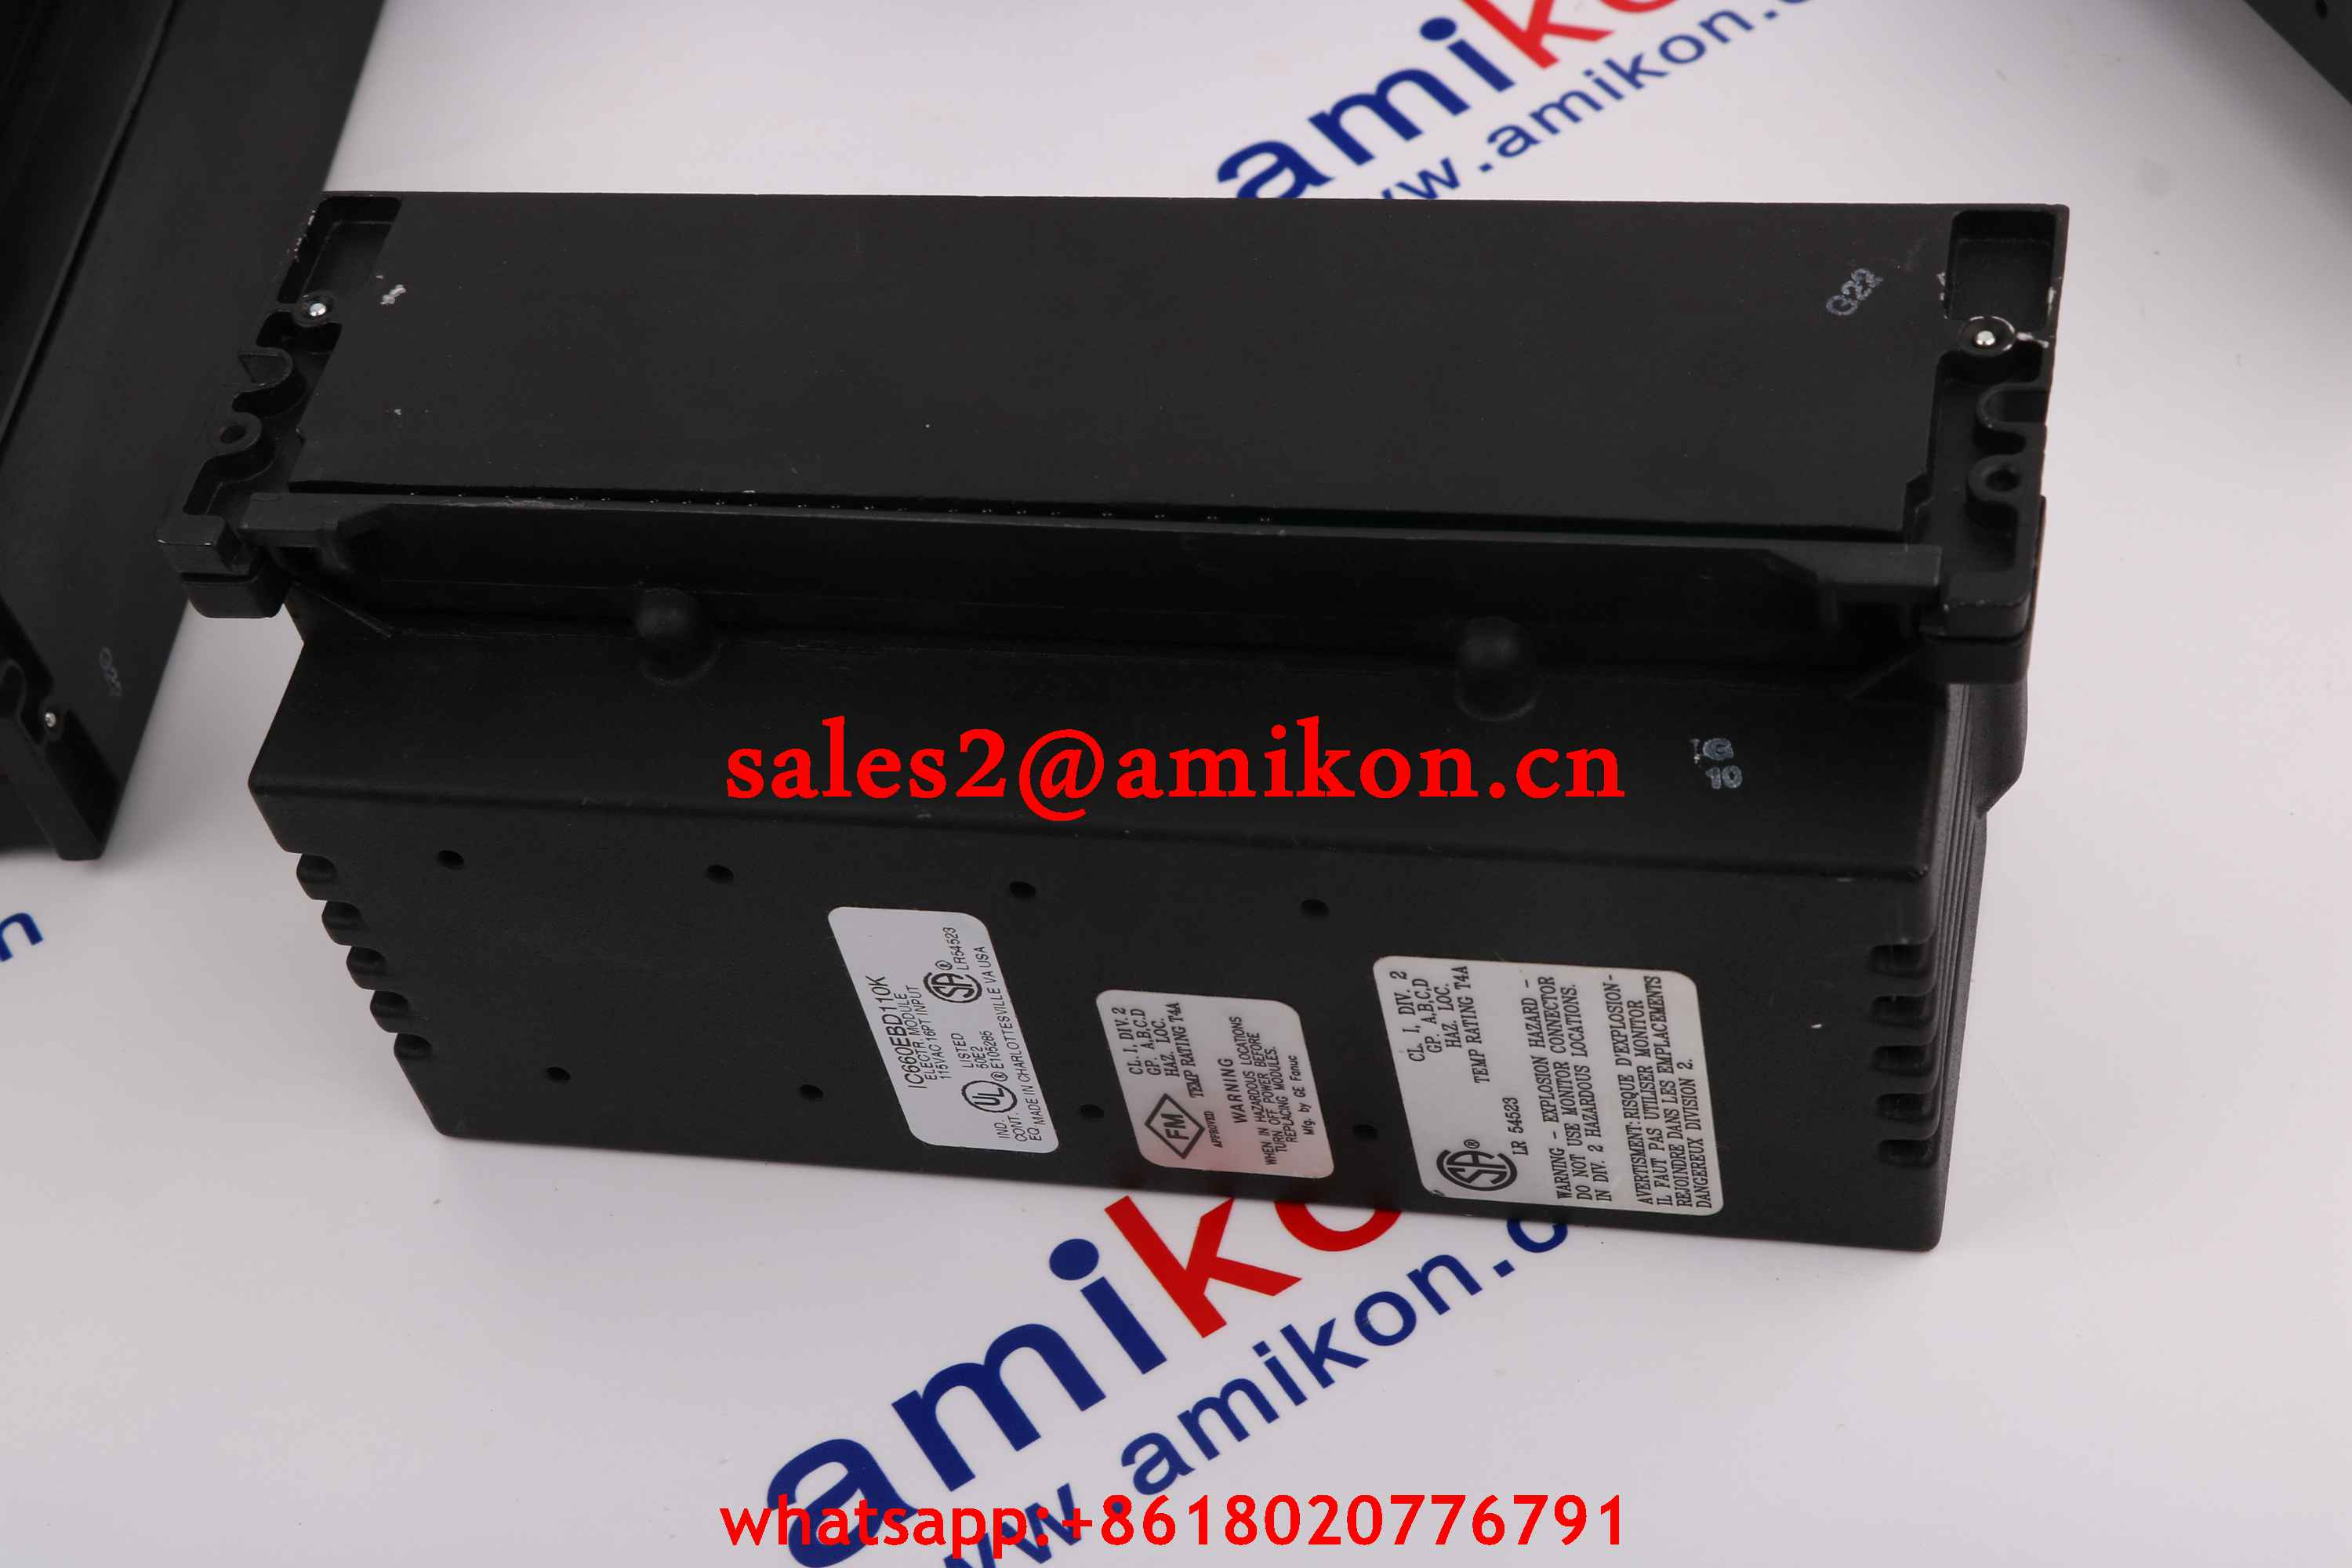 GE FANUC DS200IMCPG1CCB new and Original USA 1 year warranty